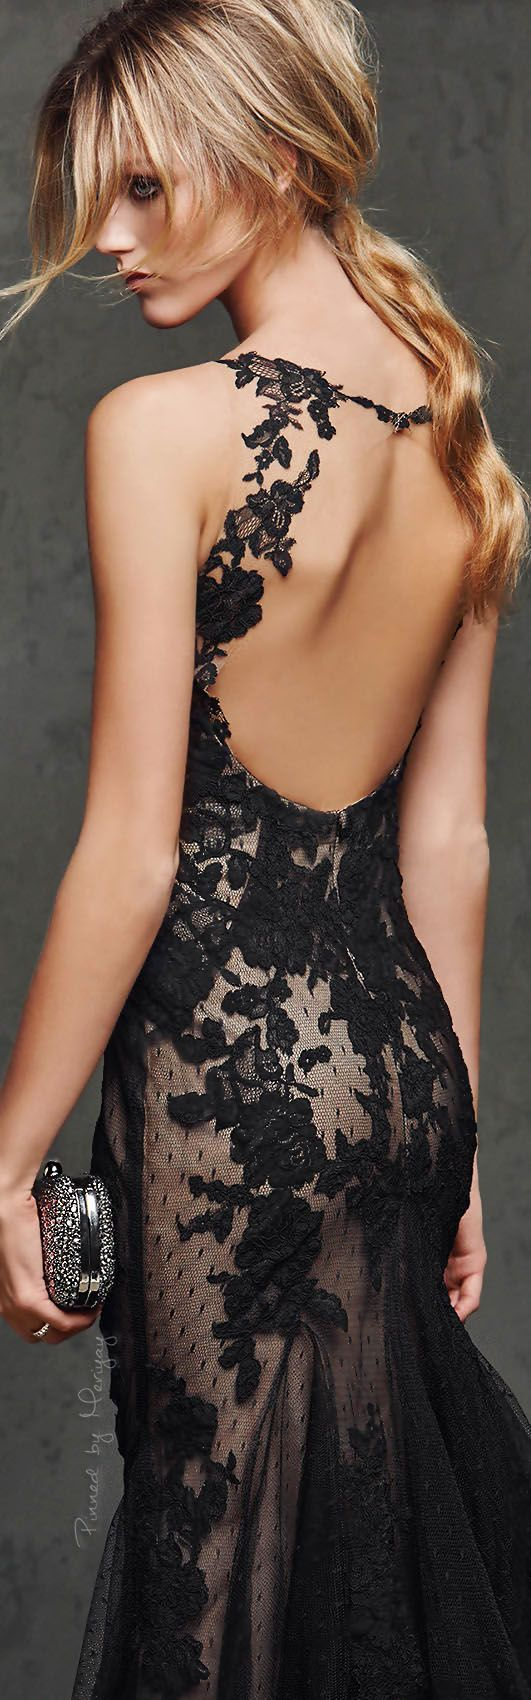 Pronovias 2016. Black lace maxi prom dress. women fashion outfit clothing style apparel @roressclothes closet ideas